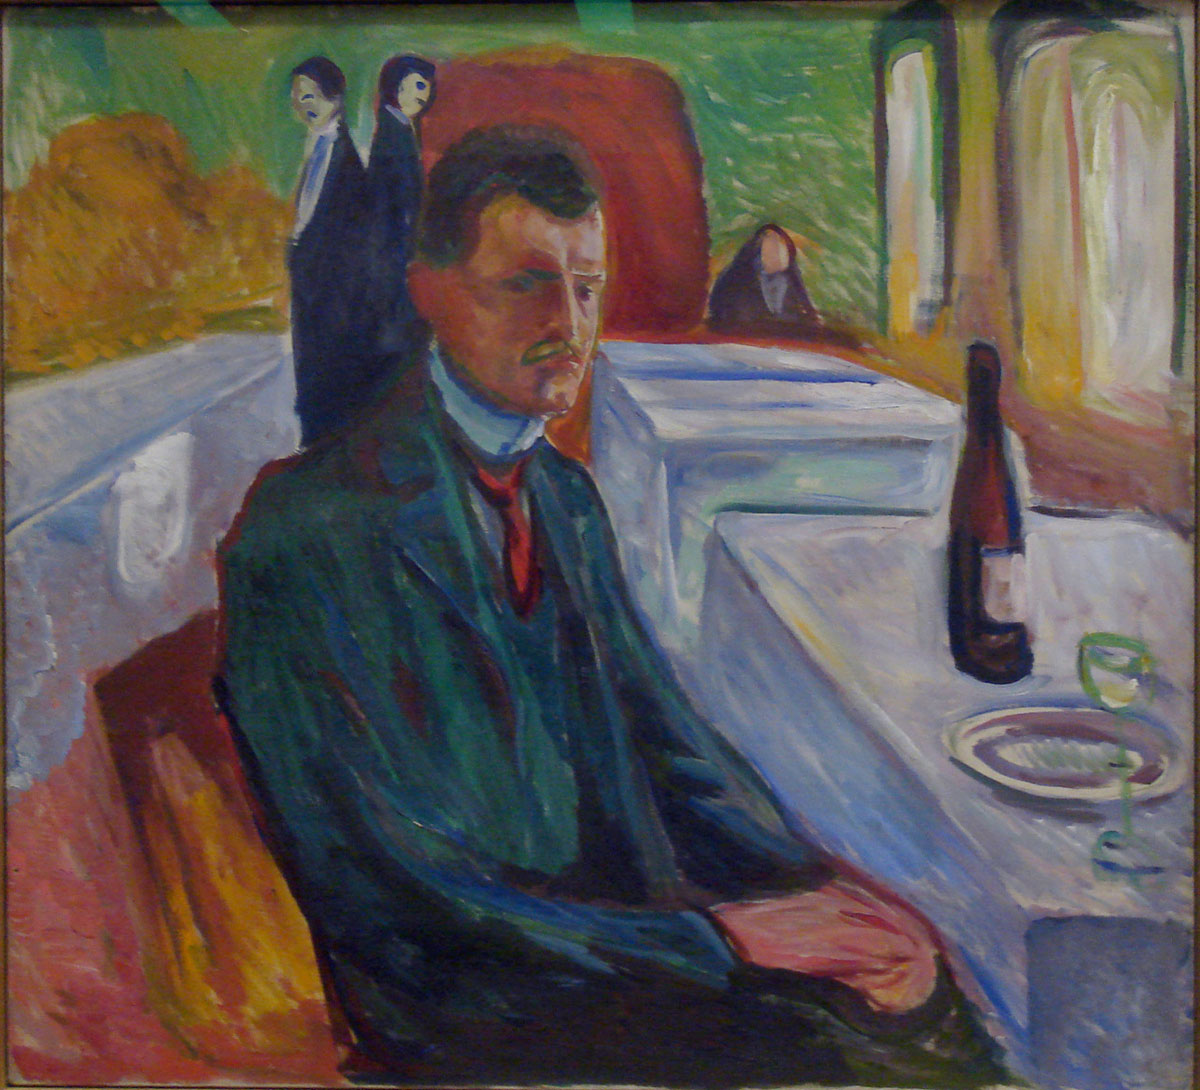 Edvard Munch S The Scream Masterpiece To Fetch 80 Million